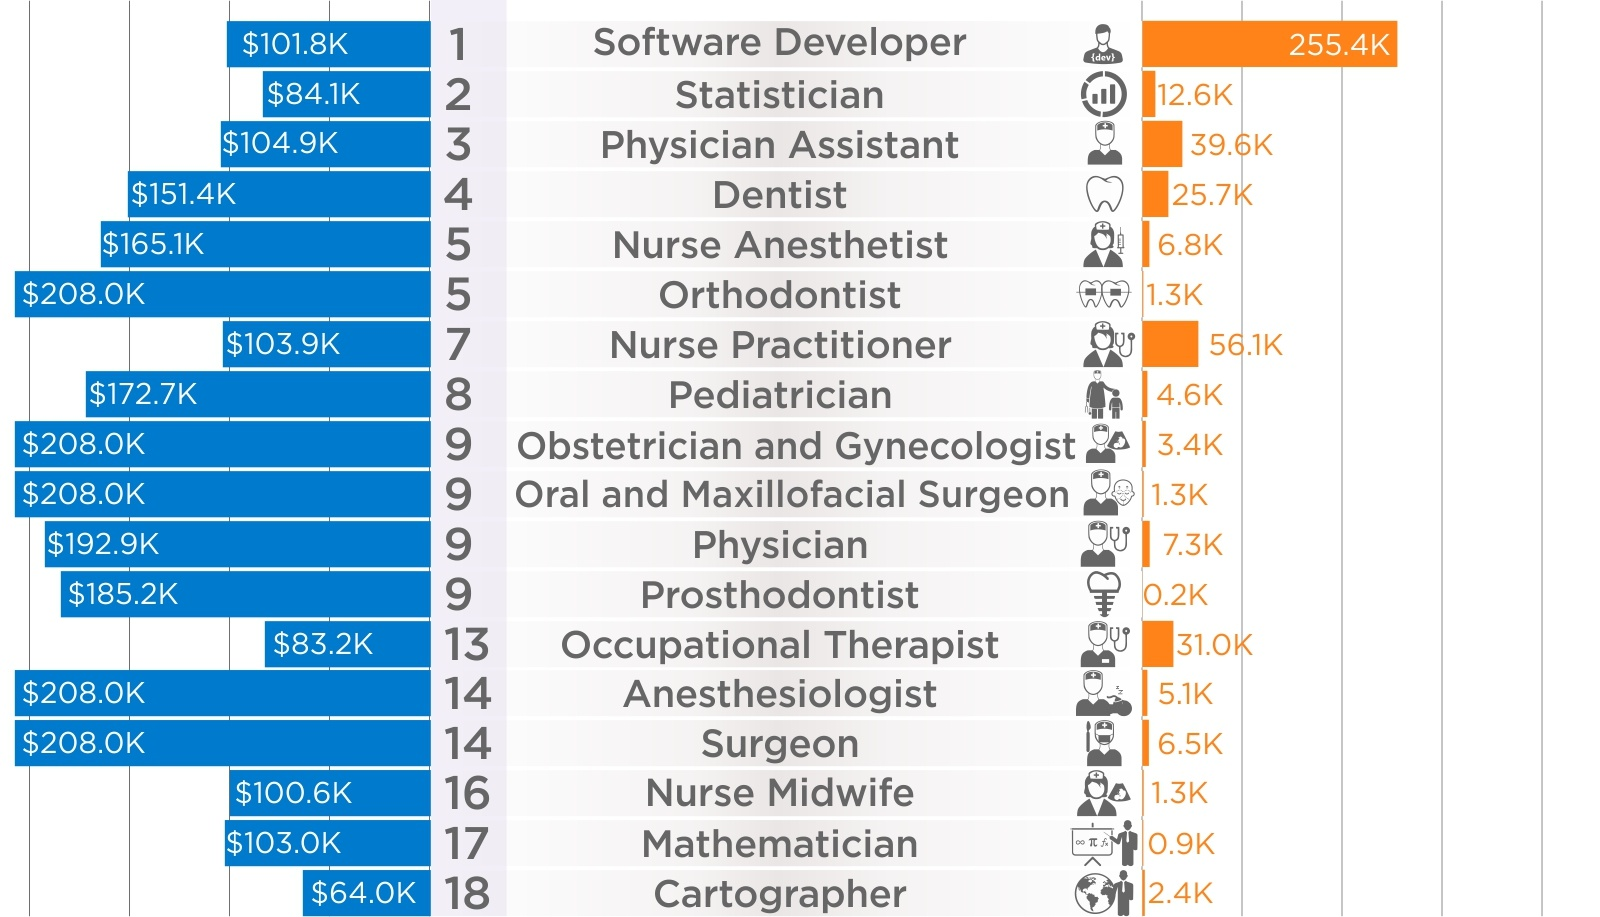 Best Jobs Of 2019 Charted: The 50 Best Jobs in America